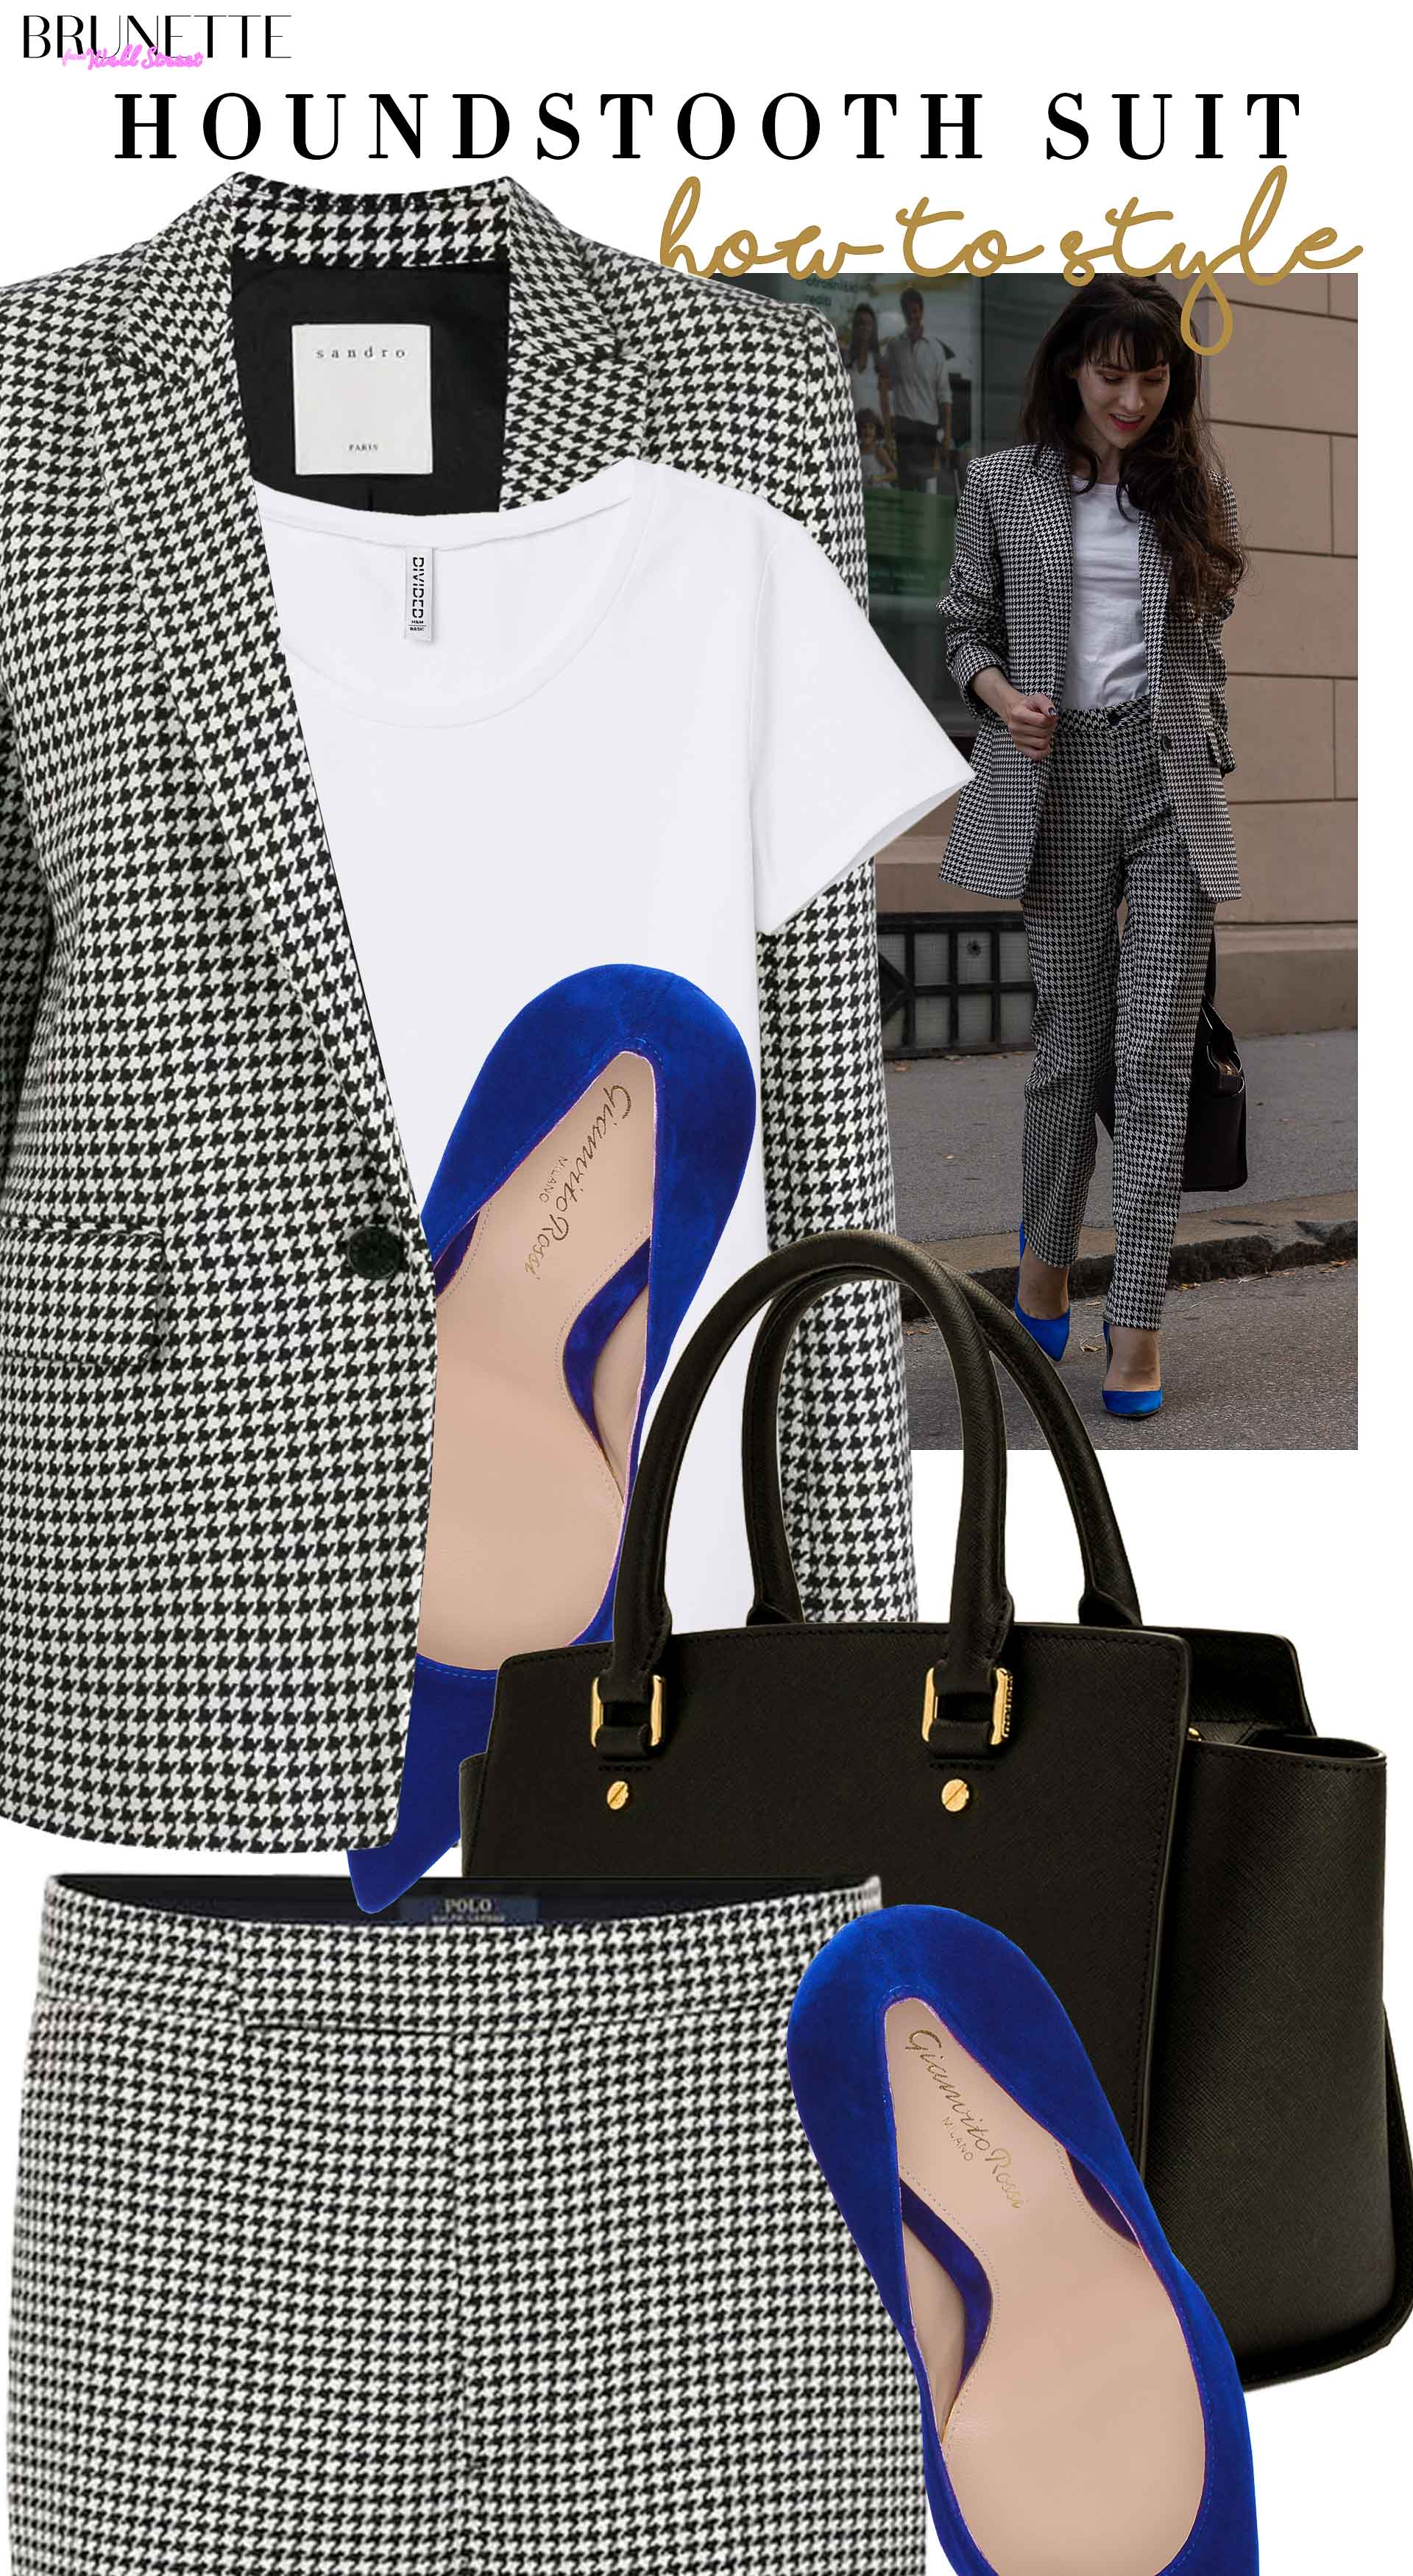 Brunette from Wall Street how to style hundstooth suit Sandro Paris Michael Kors bag Gianvito Rossi pumps